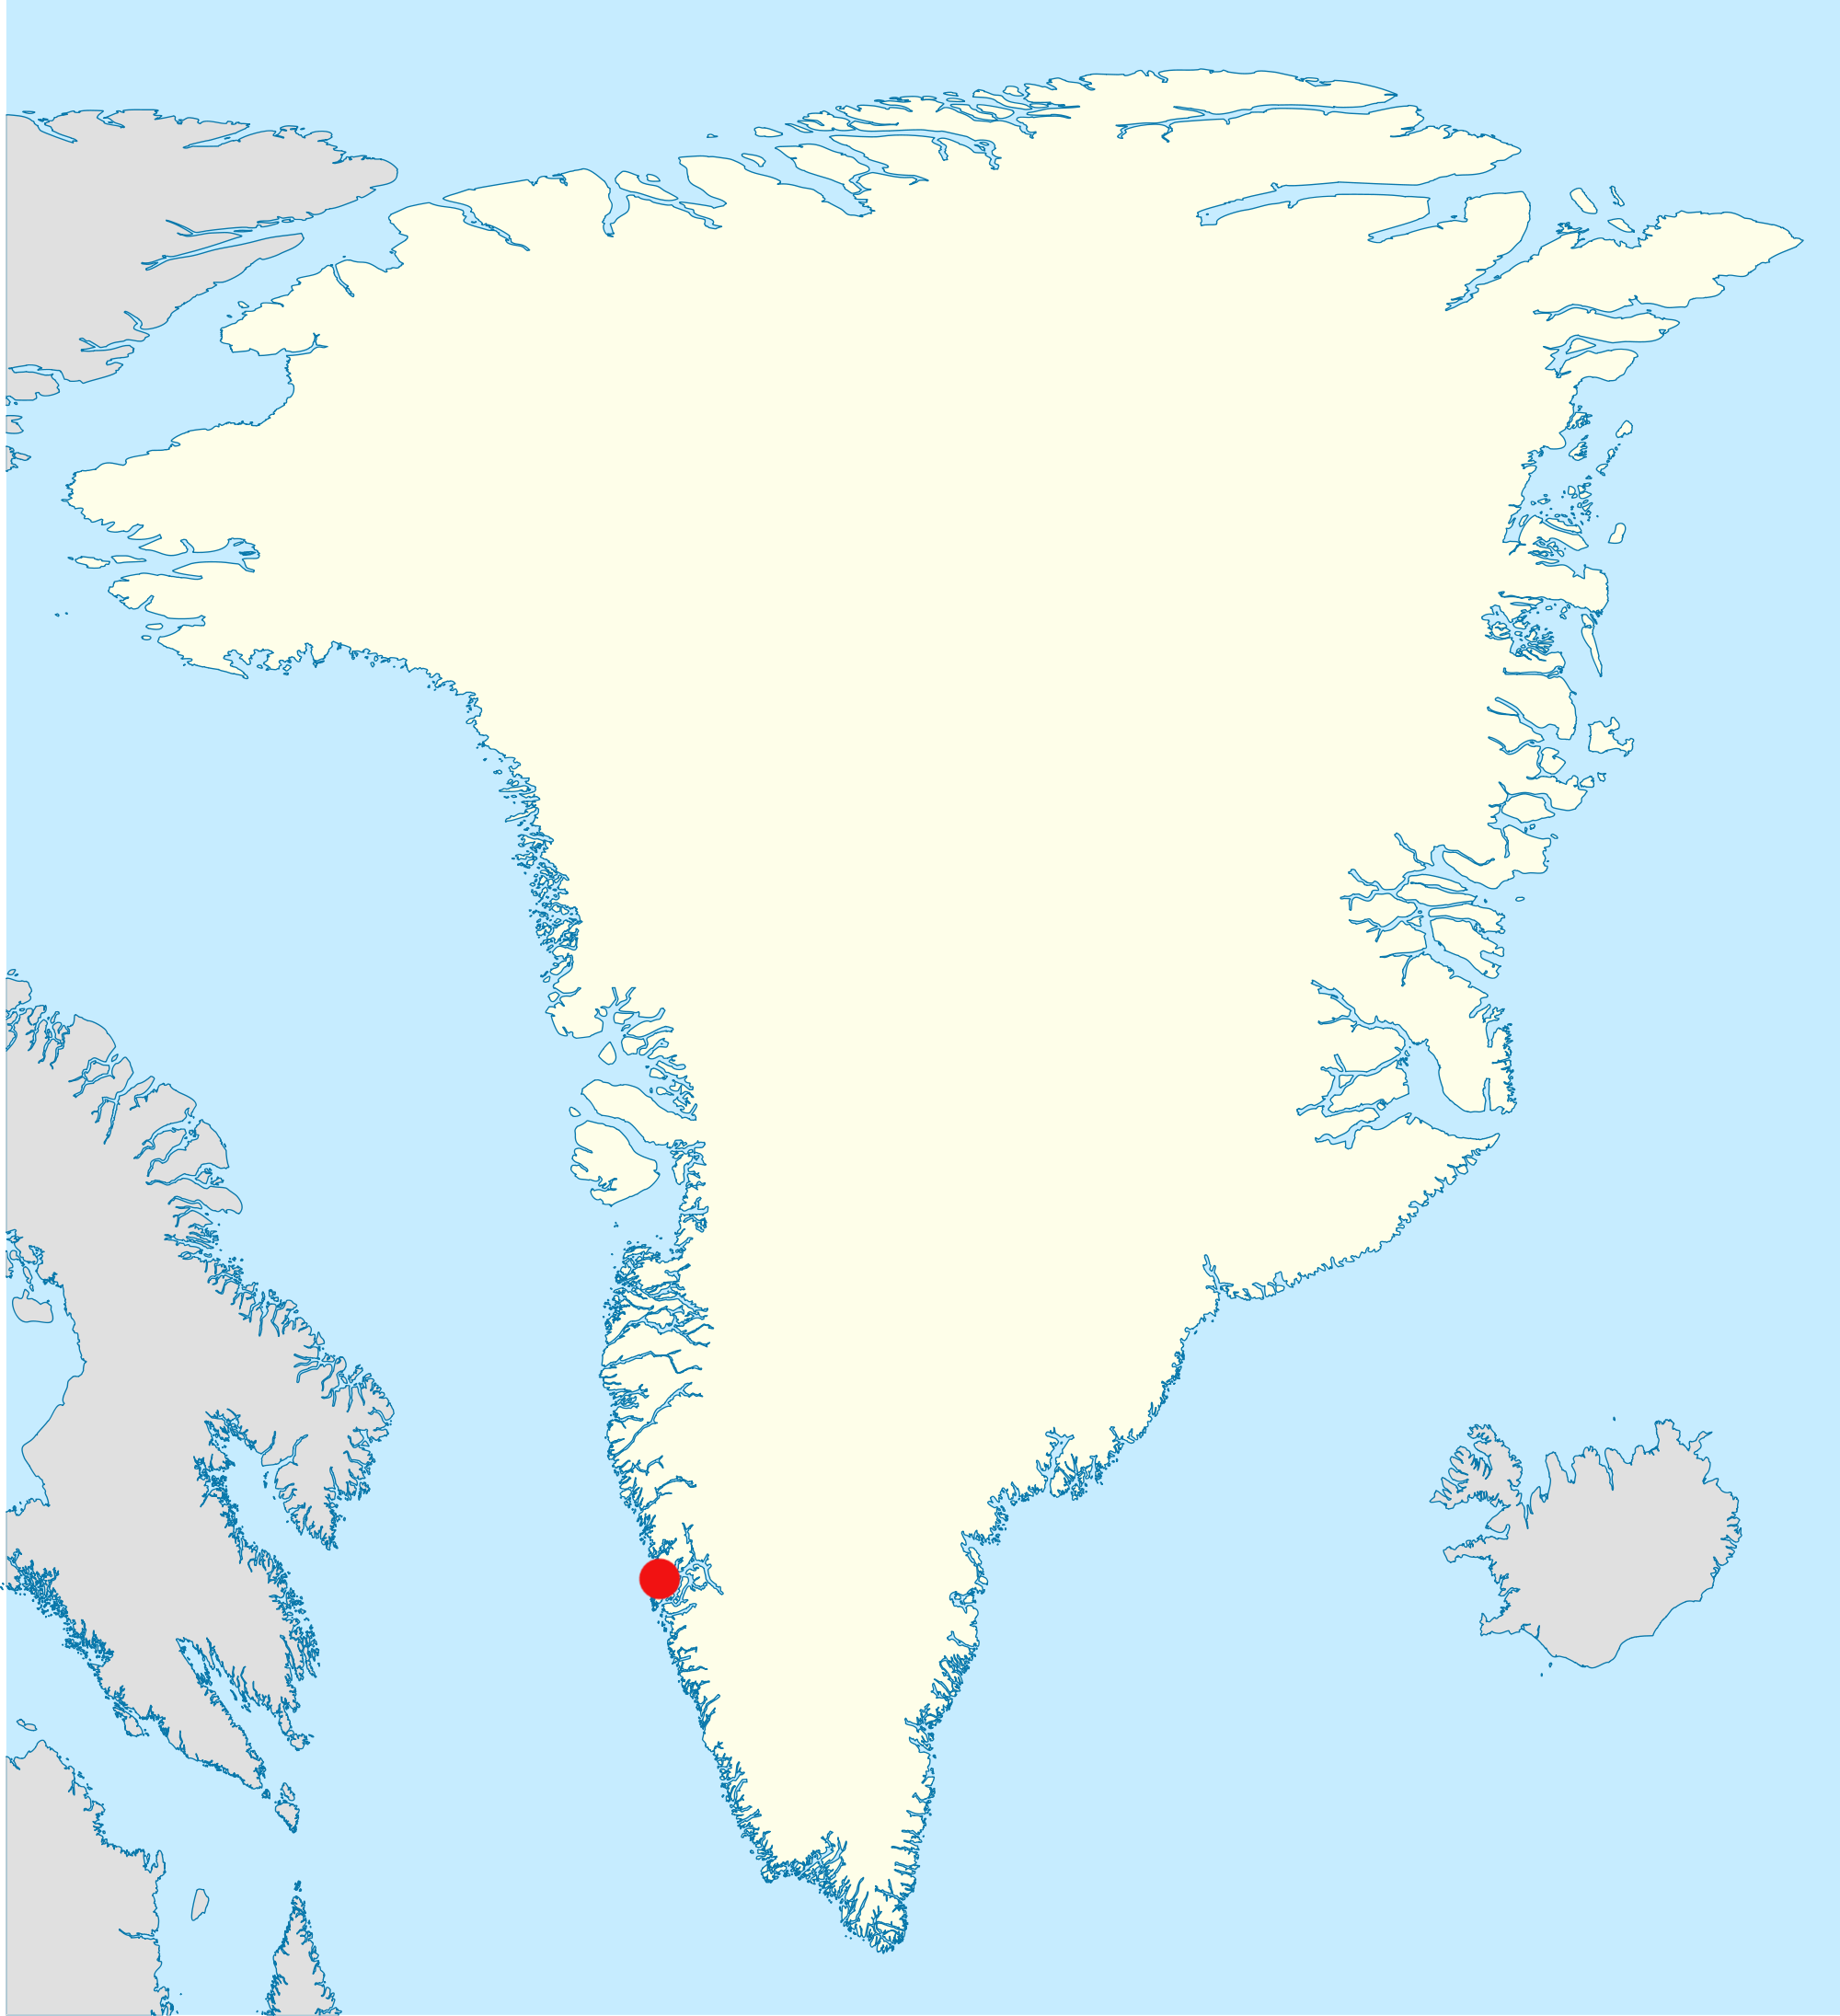 FileGreenland Nuukpng Wikimedia Commons